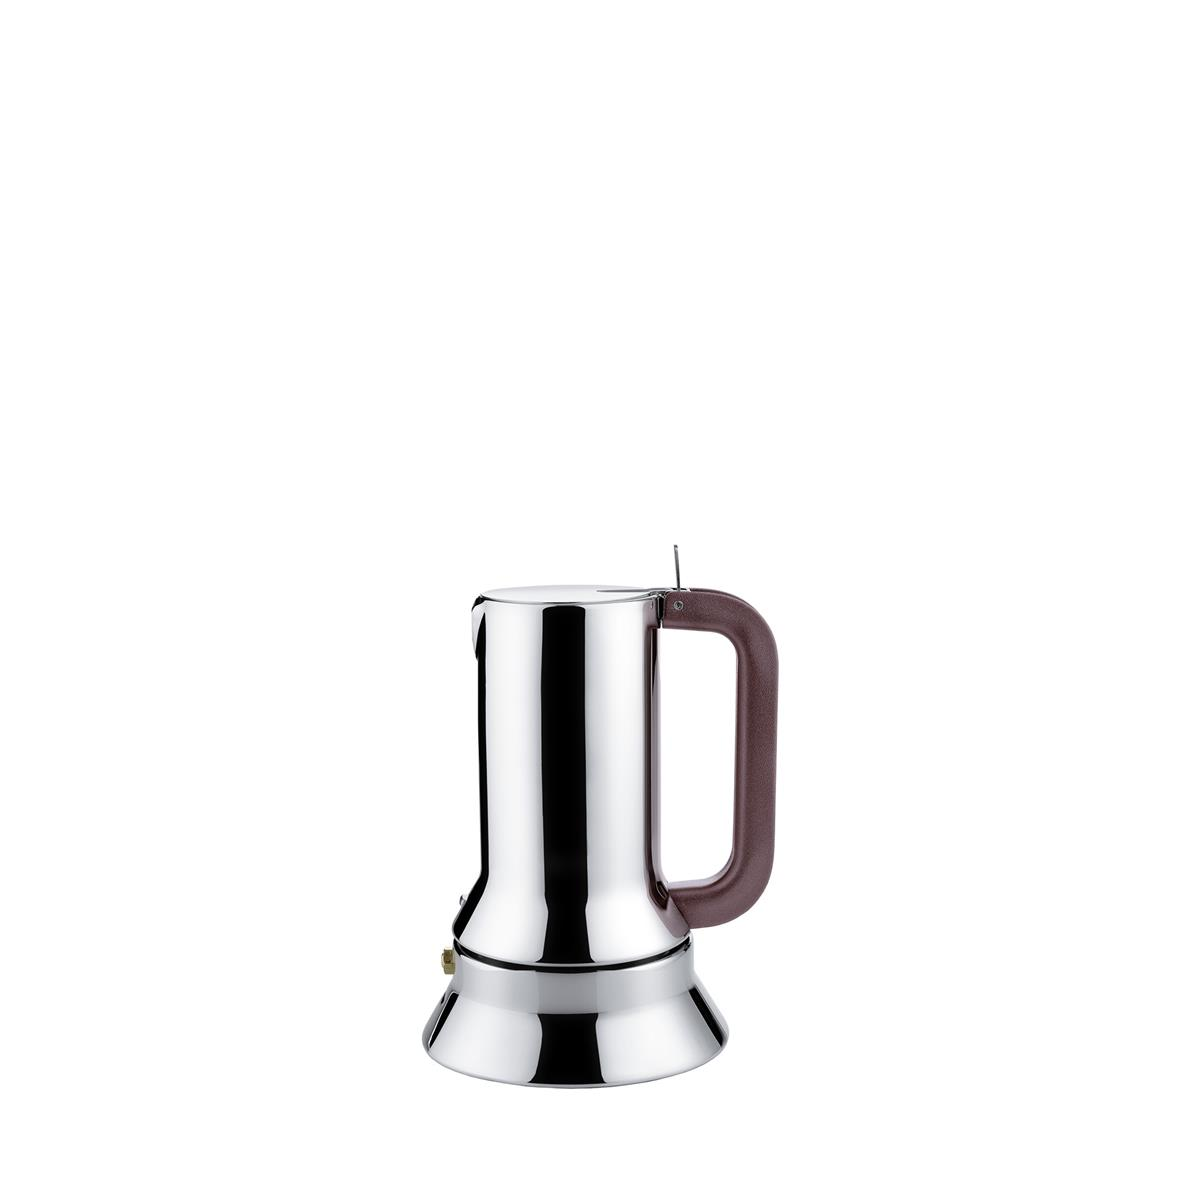 Alessi-Espresso coffee maker in 18/10 stainless steel suitable for induction 1 cup